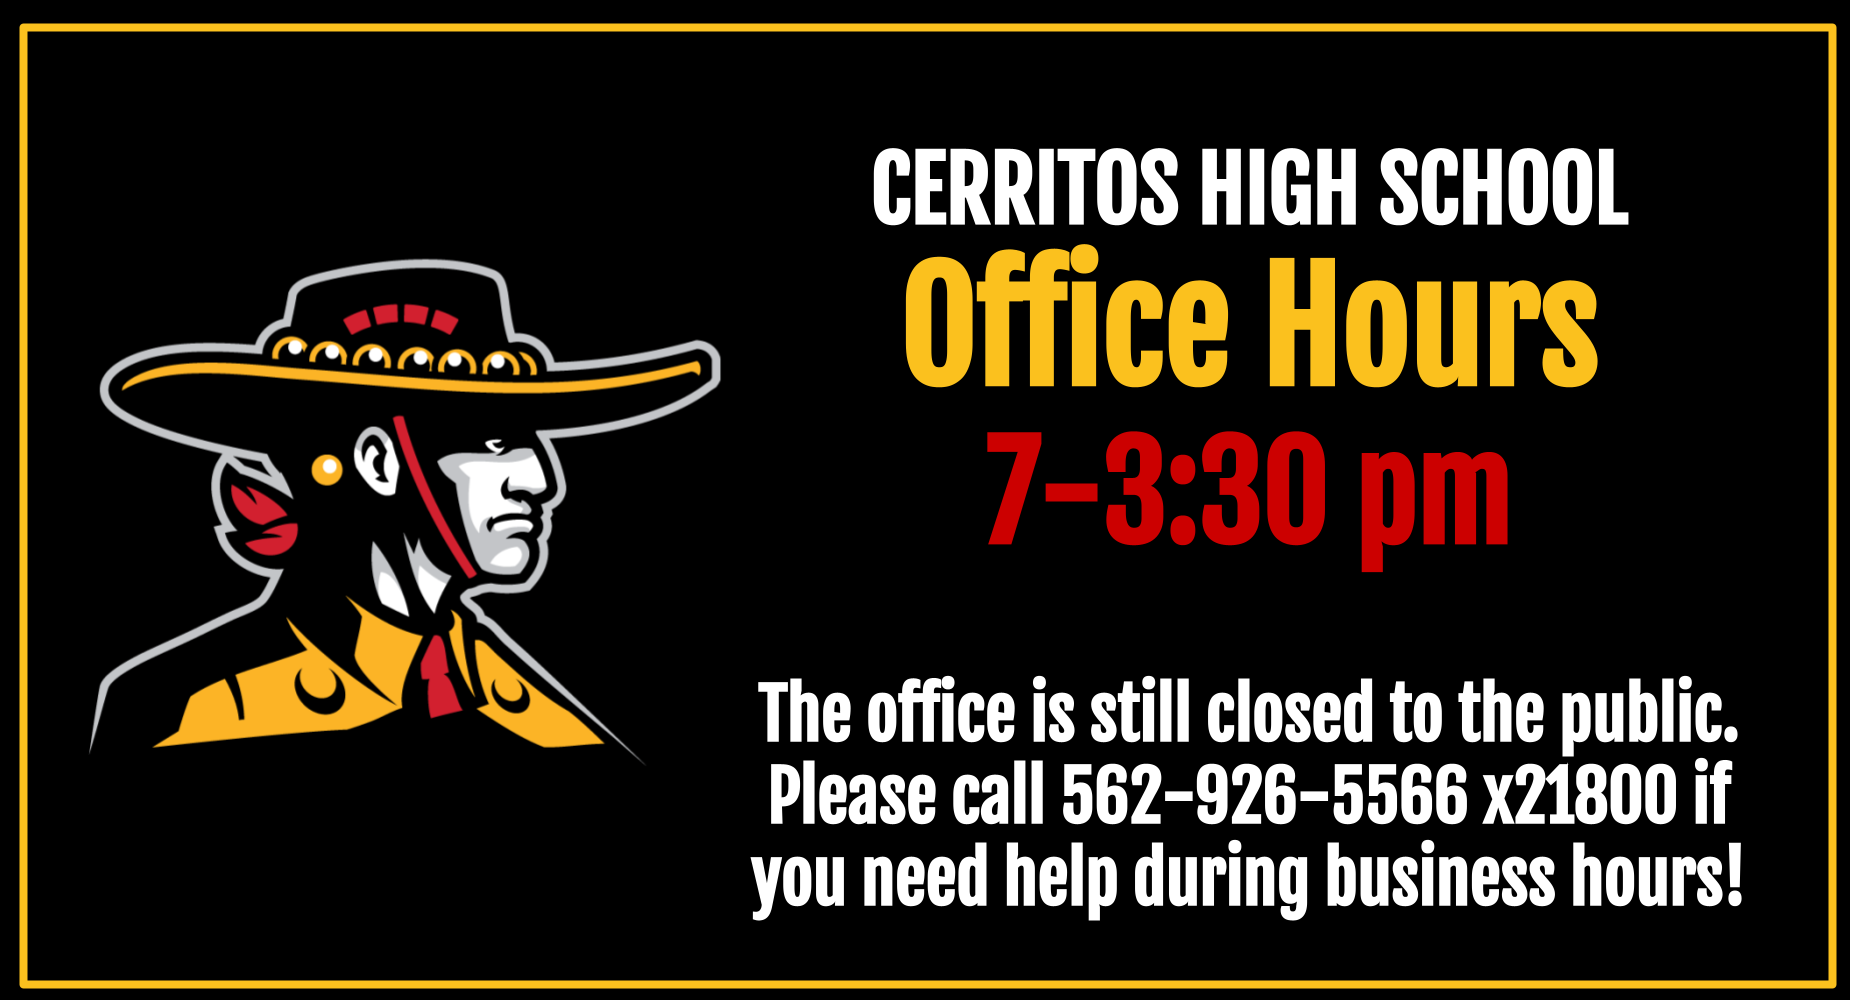 office hours to 7-3:30 M-F